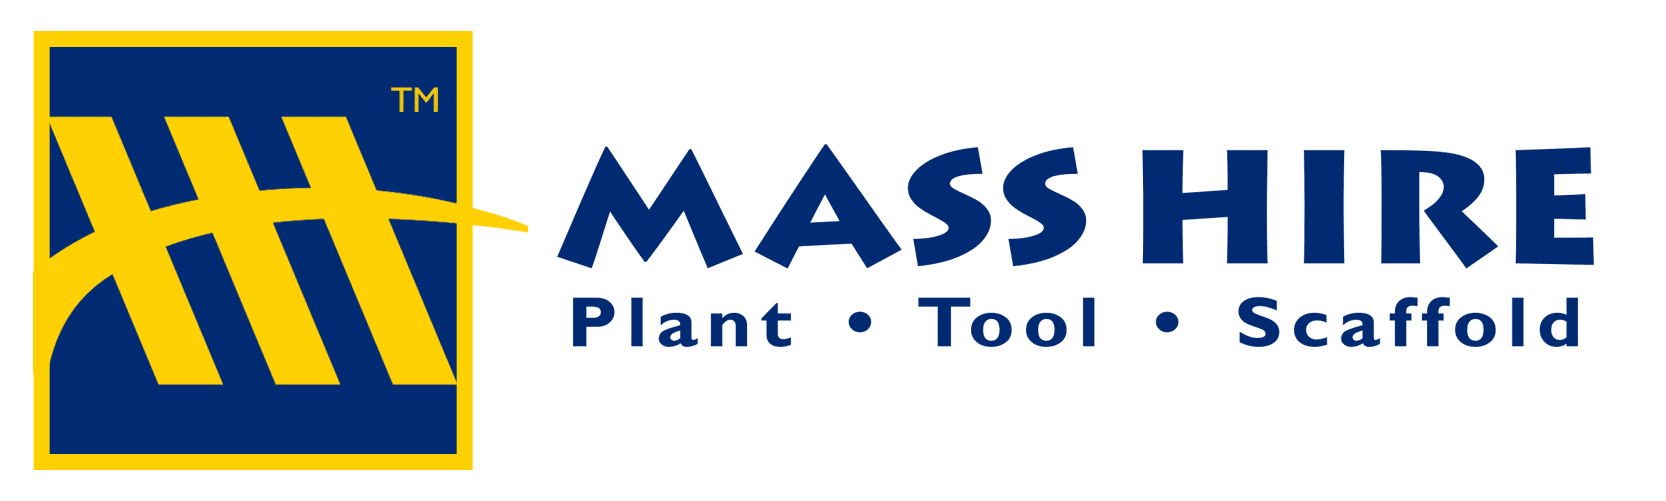 Tool Hire with MASSHIRE